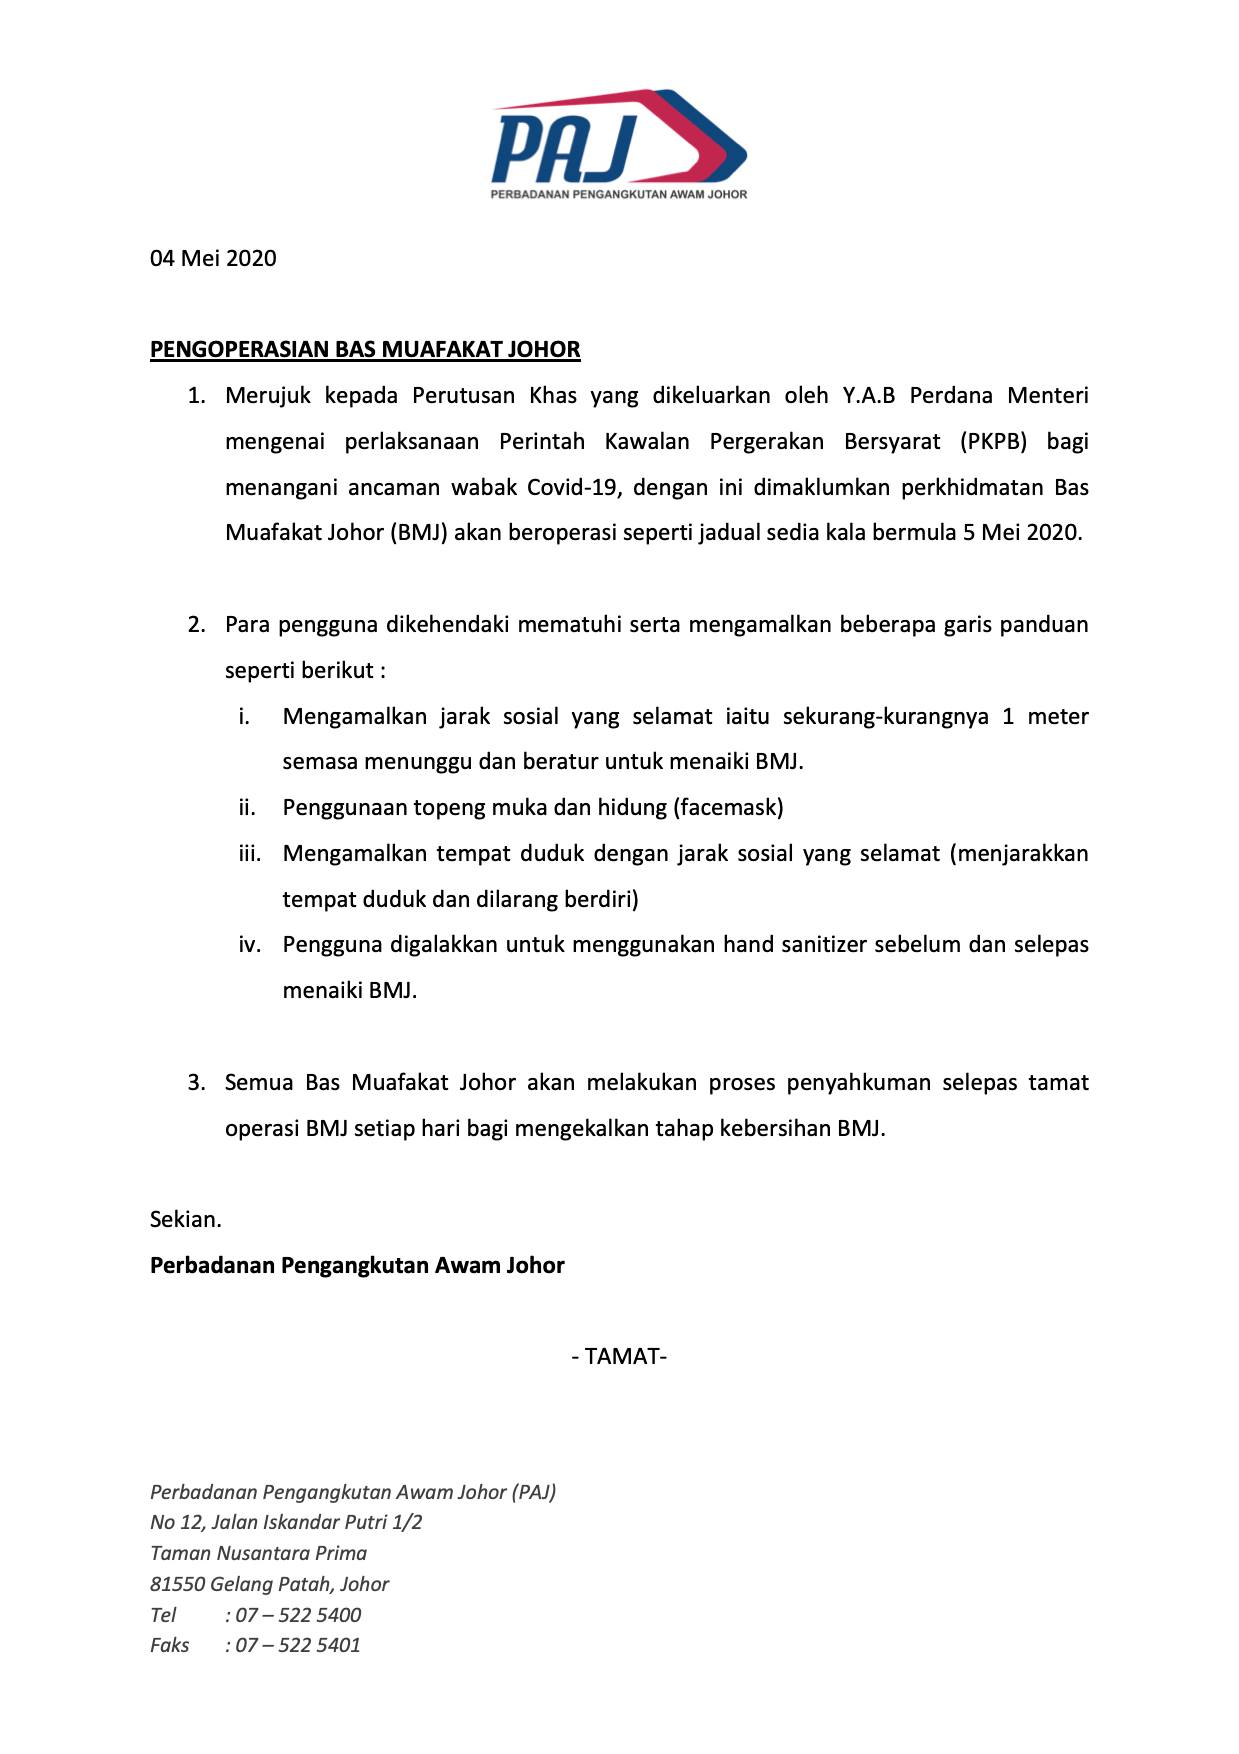 Official poster on resumption of Bas Muafakat Johor bus services from 5 May 2020